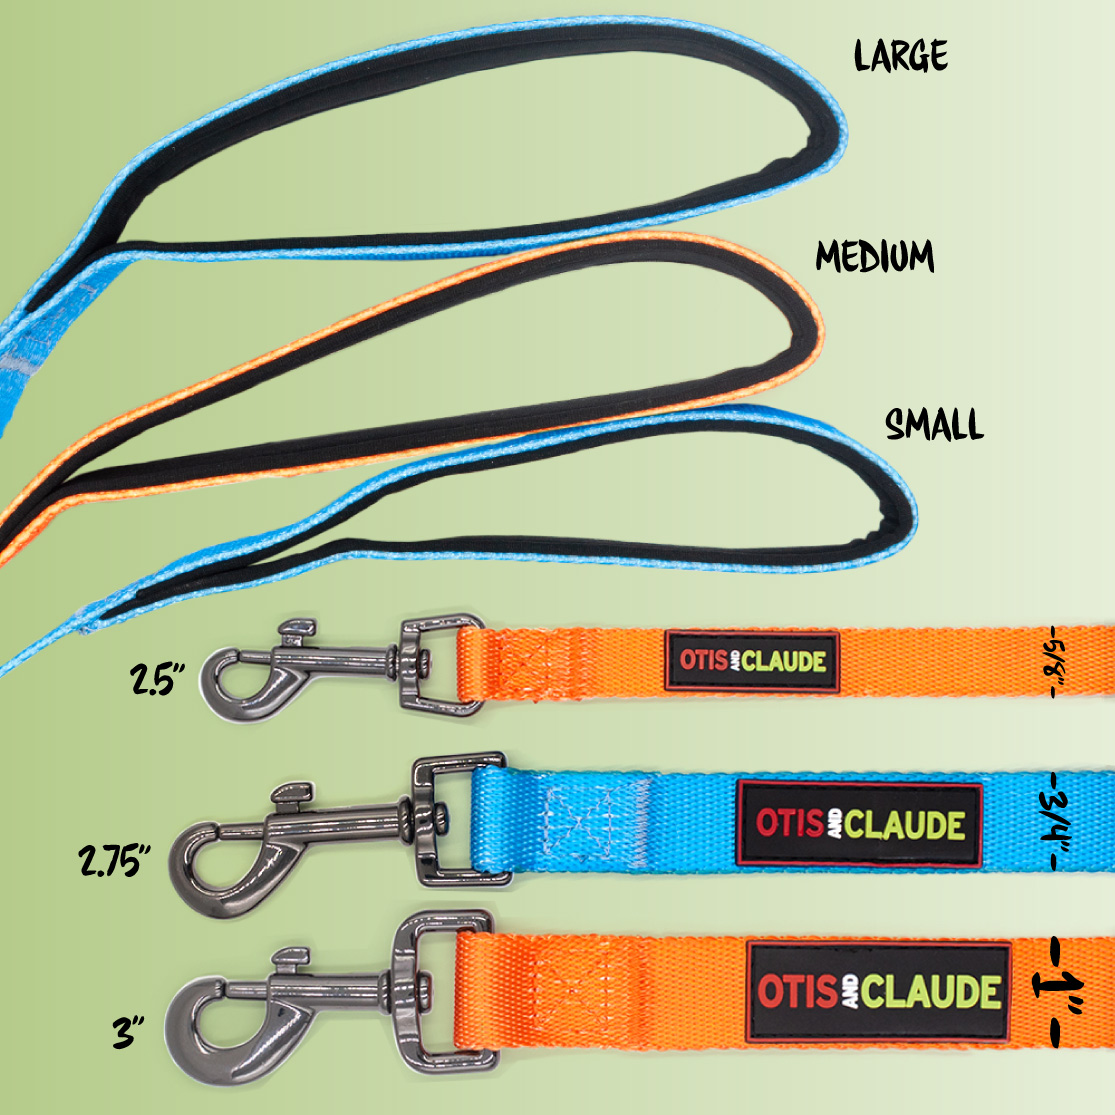 Small Medium Large Princess Blue and Turmeric Leashes, showing measurements